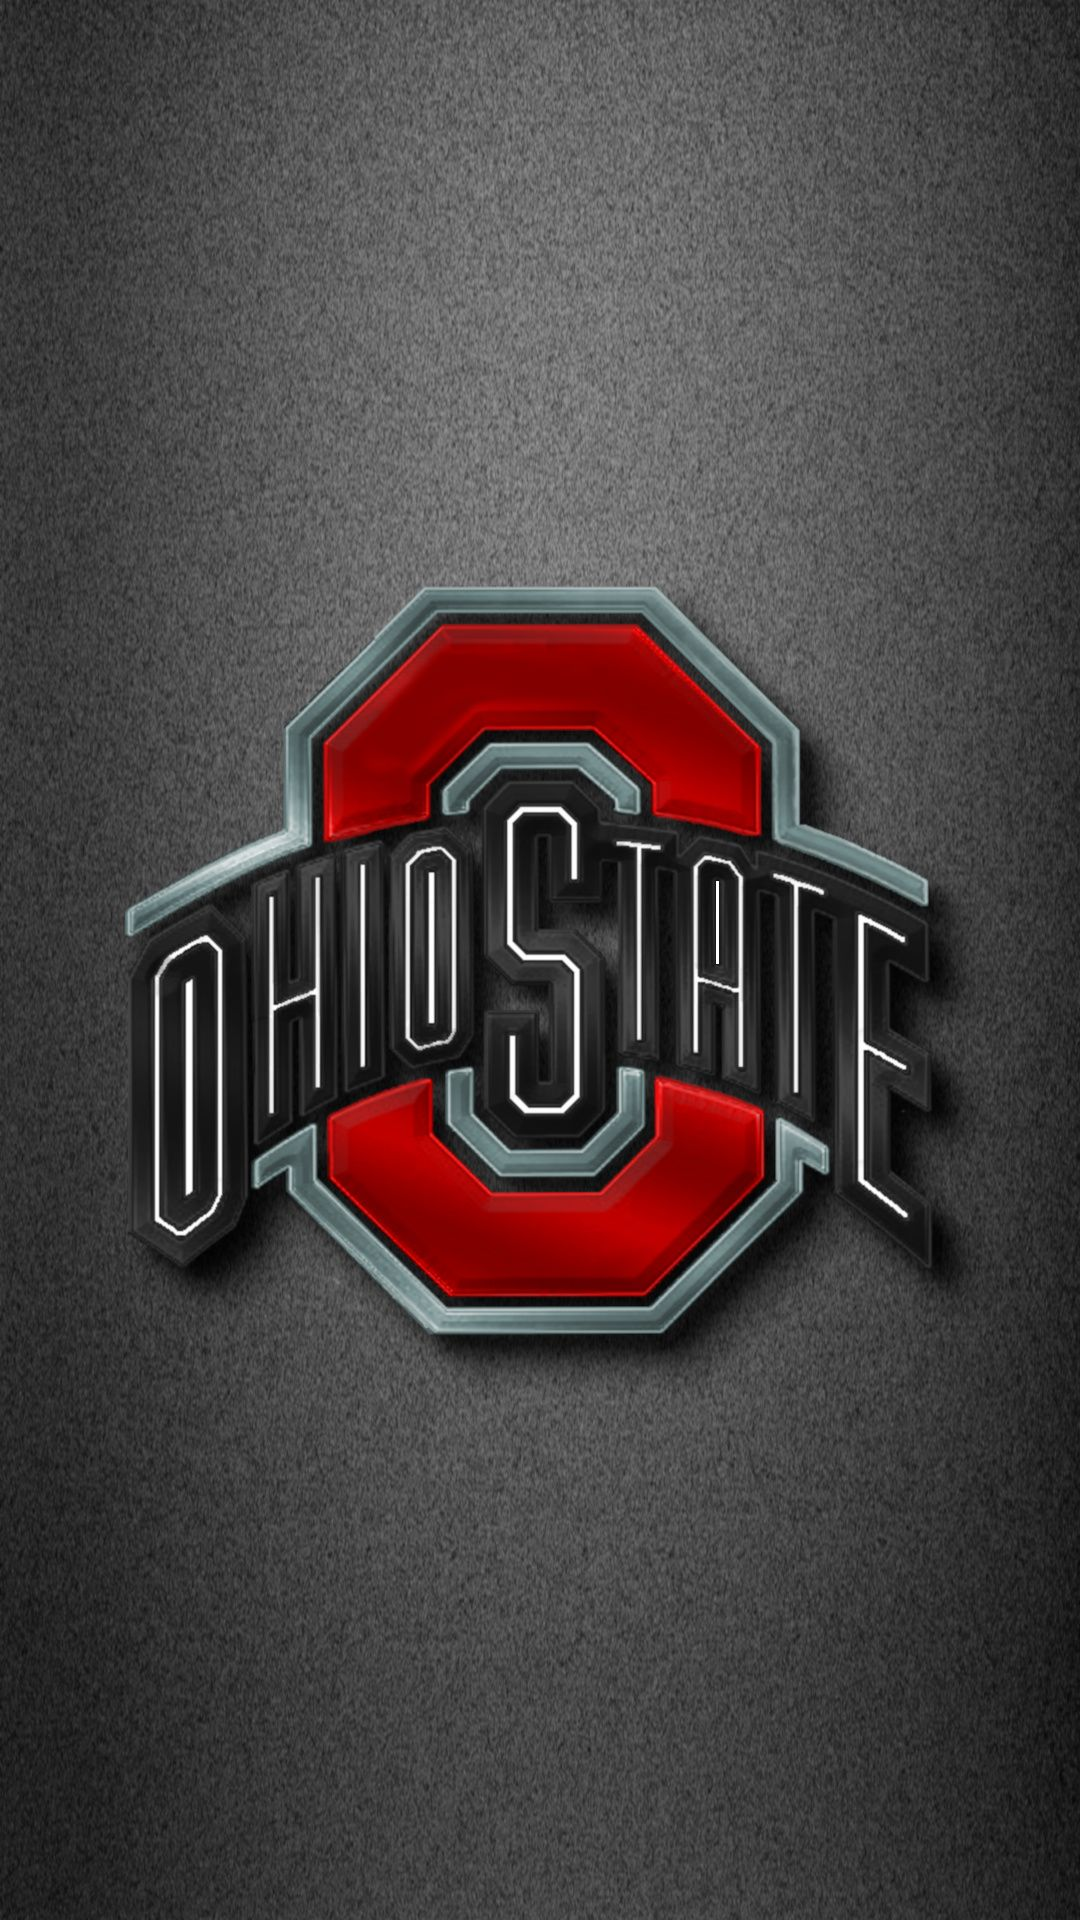 Osu Wallpaper 810 For Iphone 6 7 8 Plus 1080 X 1920px 401ppi